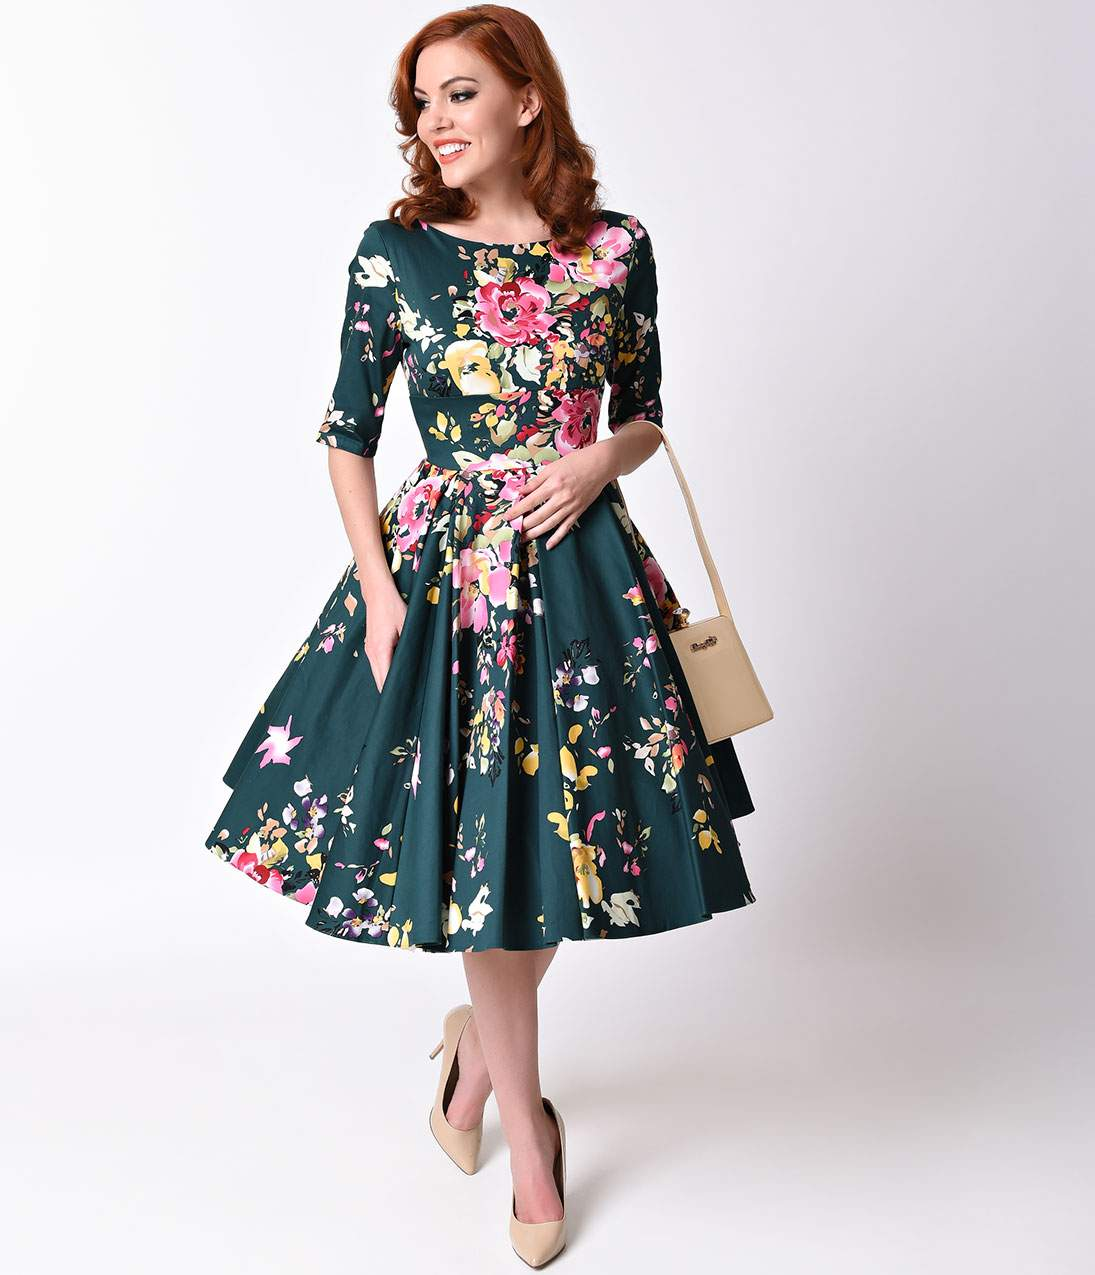 1950s Dresses, 50s Dresses | 1950s Style Dresses Vintage Deep Green Seville Floral Half Sleeve Hepburn Swing Dress $188.00 AT vintagedancer.com